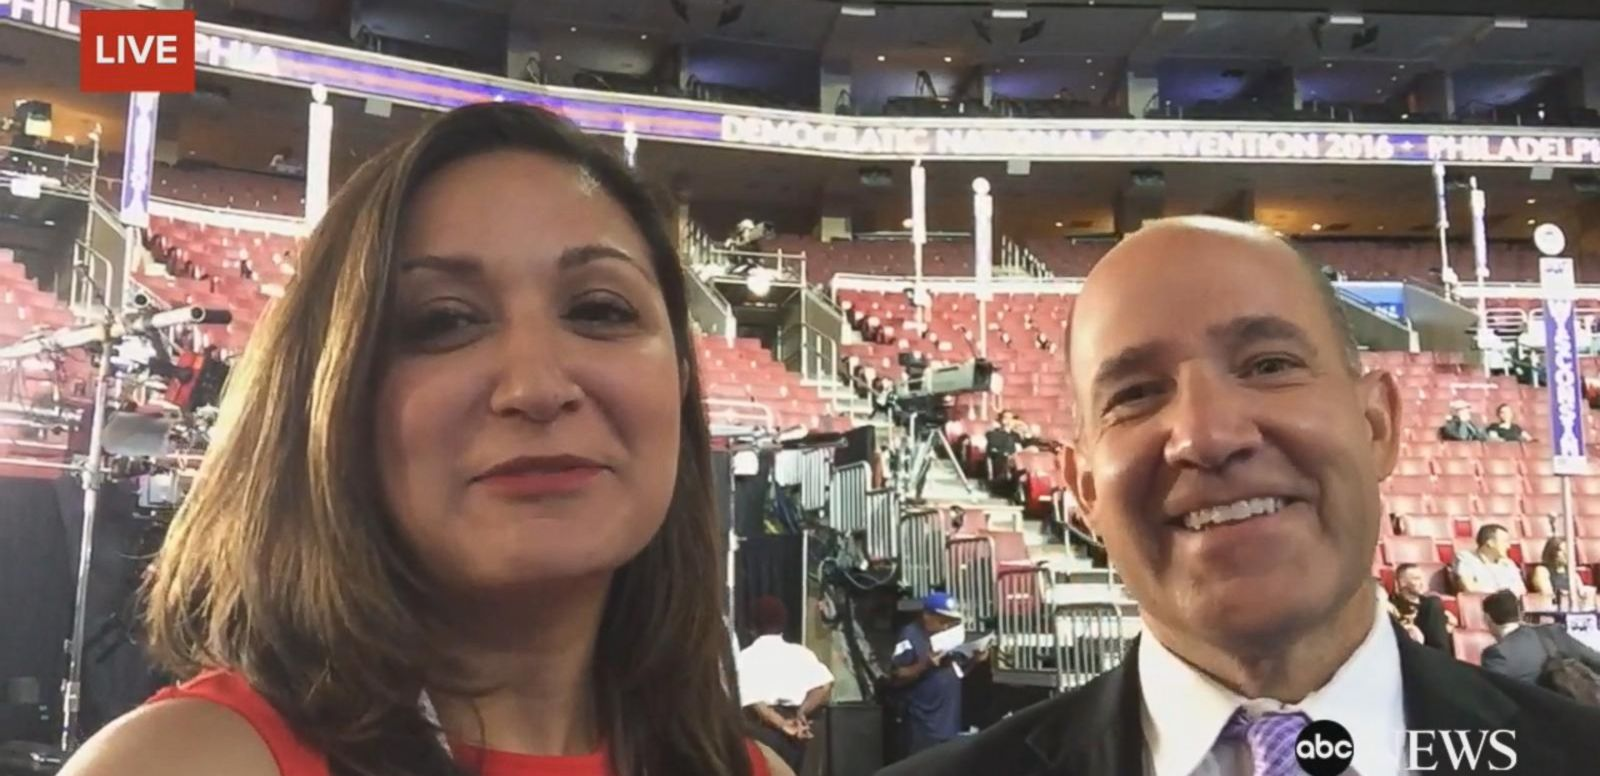 VIDEO: Preview of the First Day of the Democratic National Convention